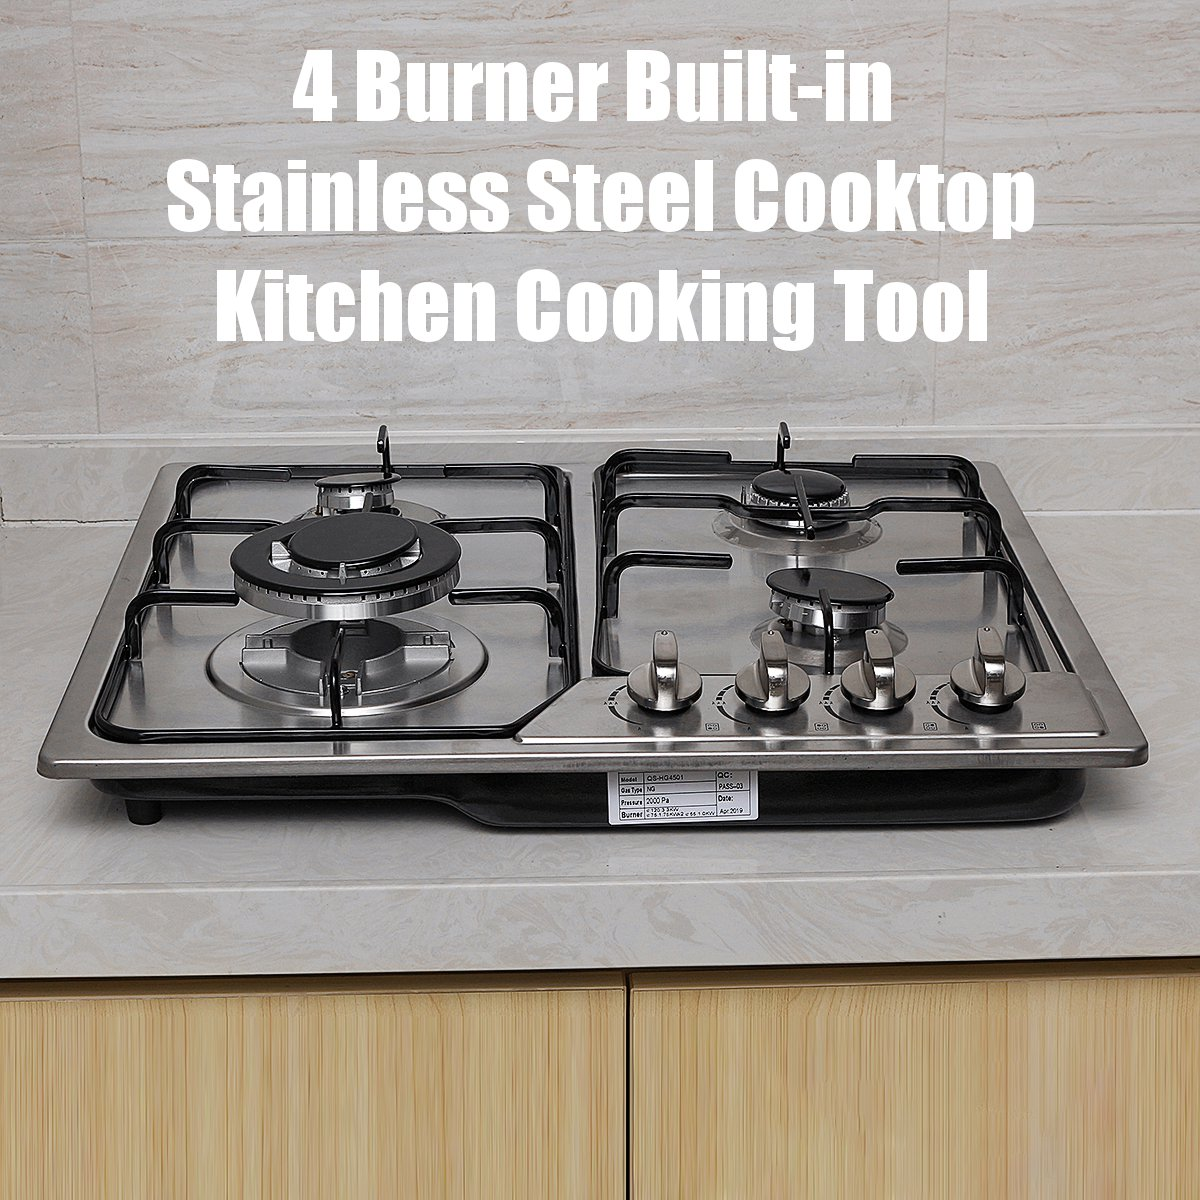 Built-in 4 Burner Cooktop 58x50cm Stainless Steel Gas Stoves Natural Gas Hob Kitchen Cooking Appliance Gas Cooker Cookware